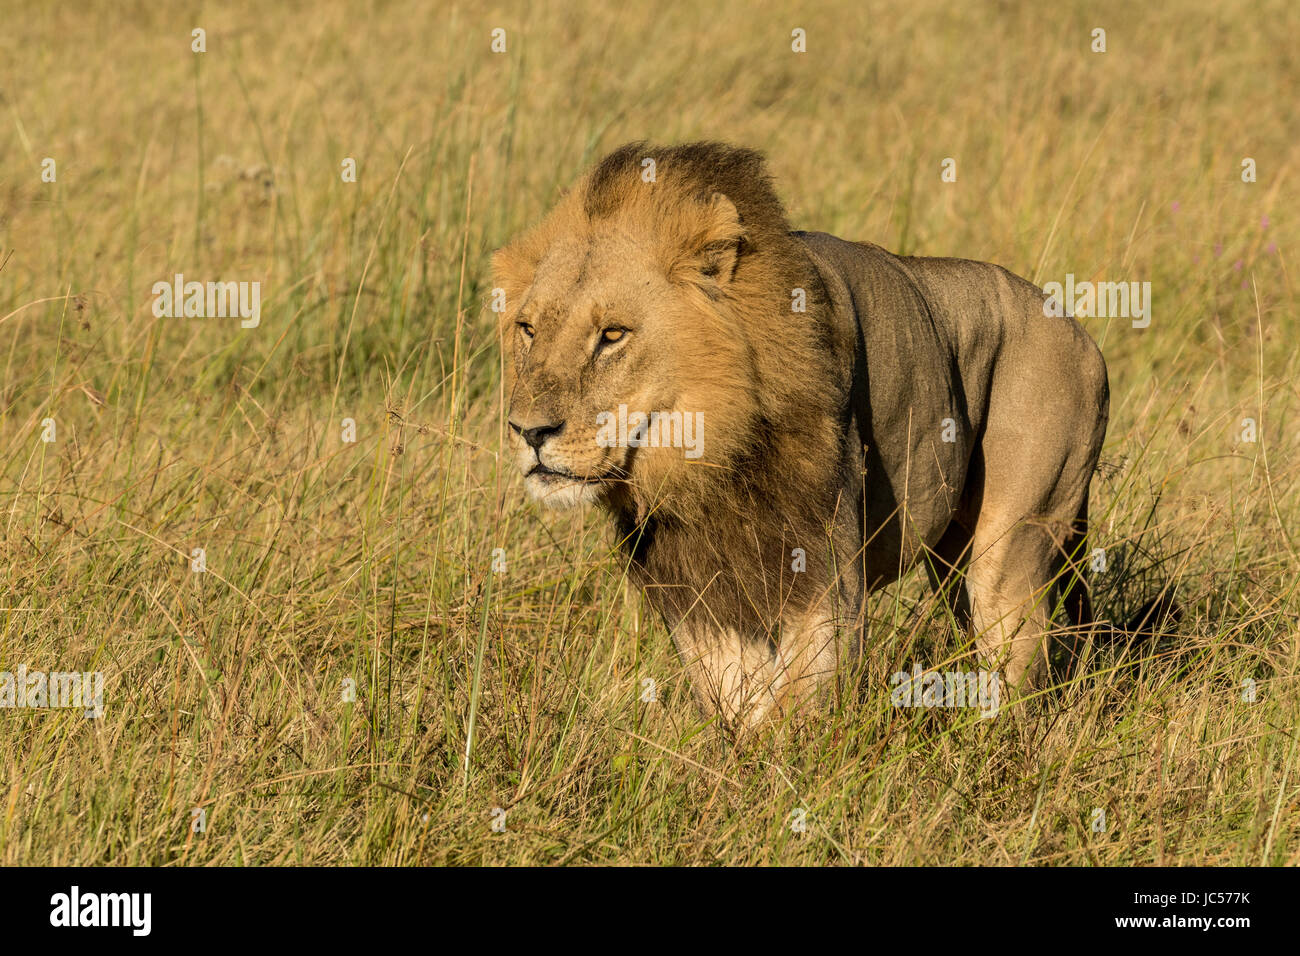 Male lion in the grass - Stock Image